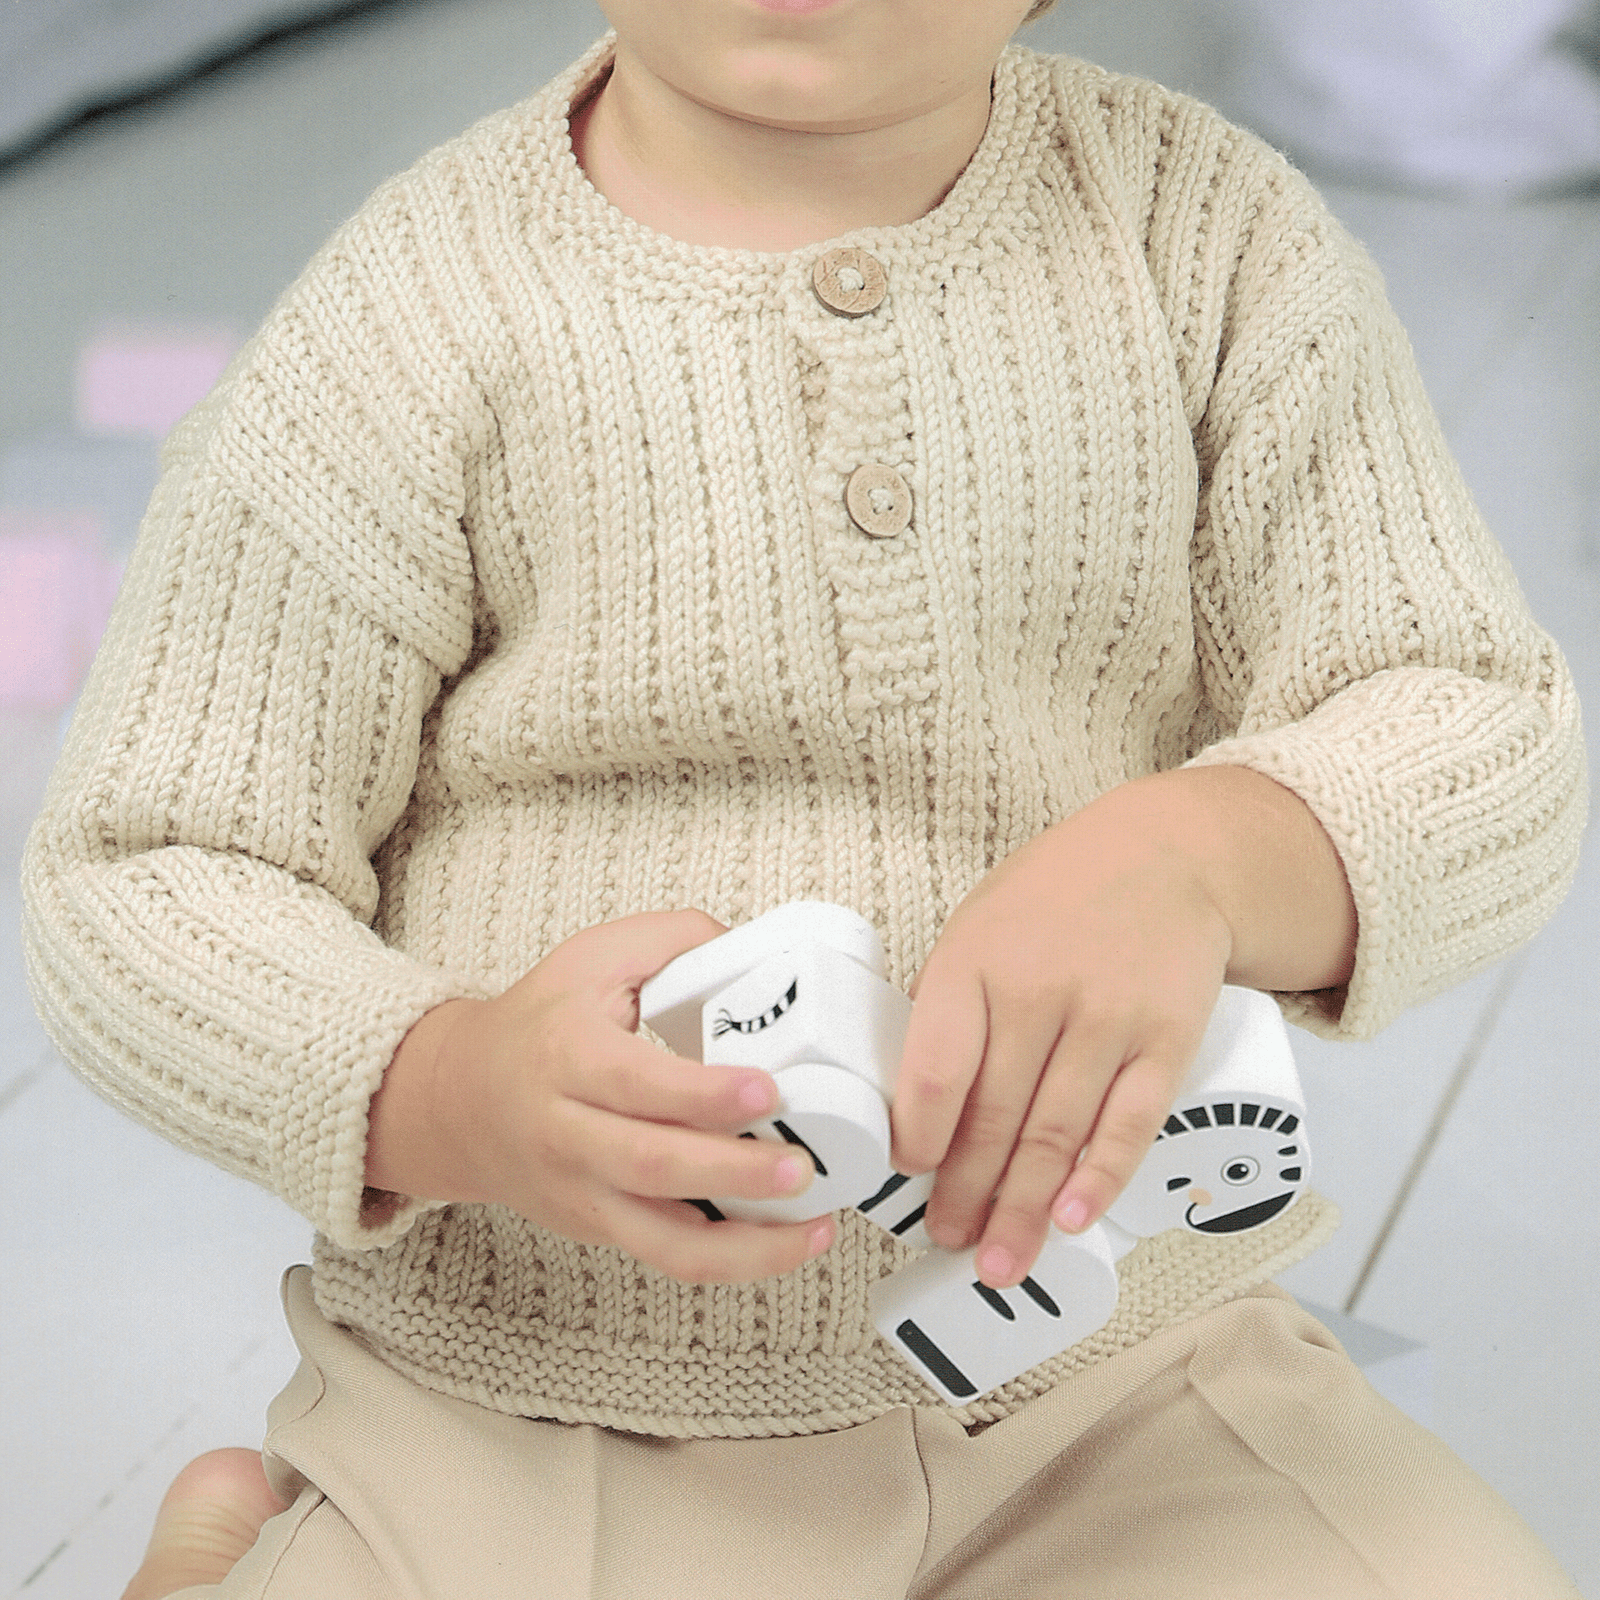 Lorenzo Baby Sweater Kit + FREE BONUS book of baby patterns!*